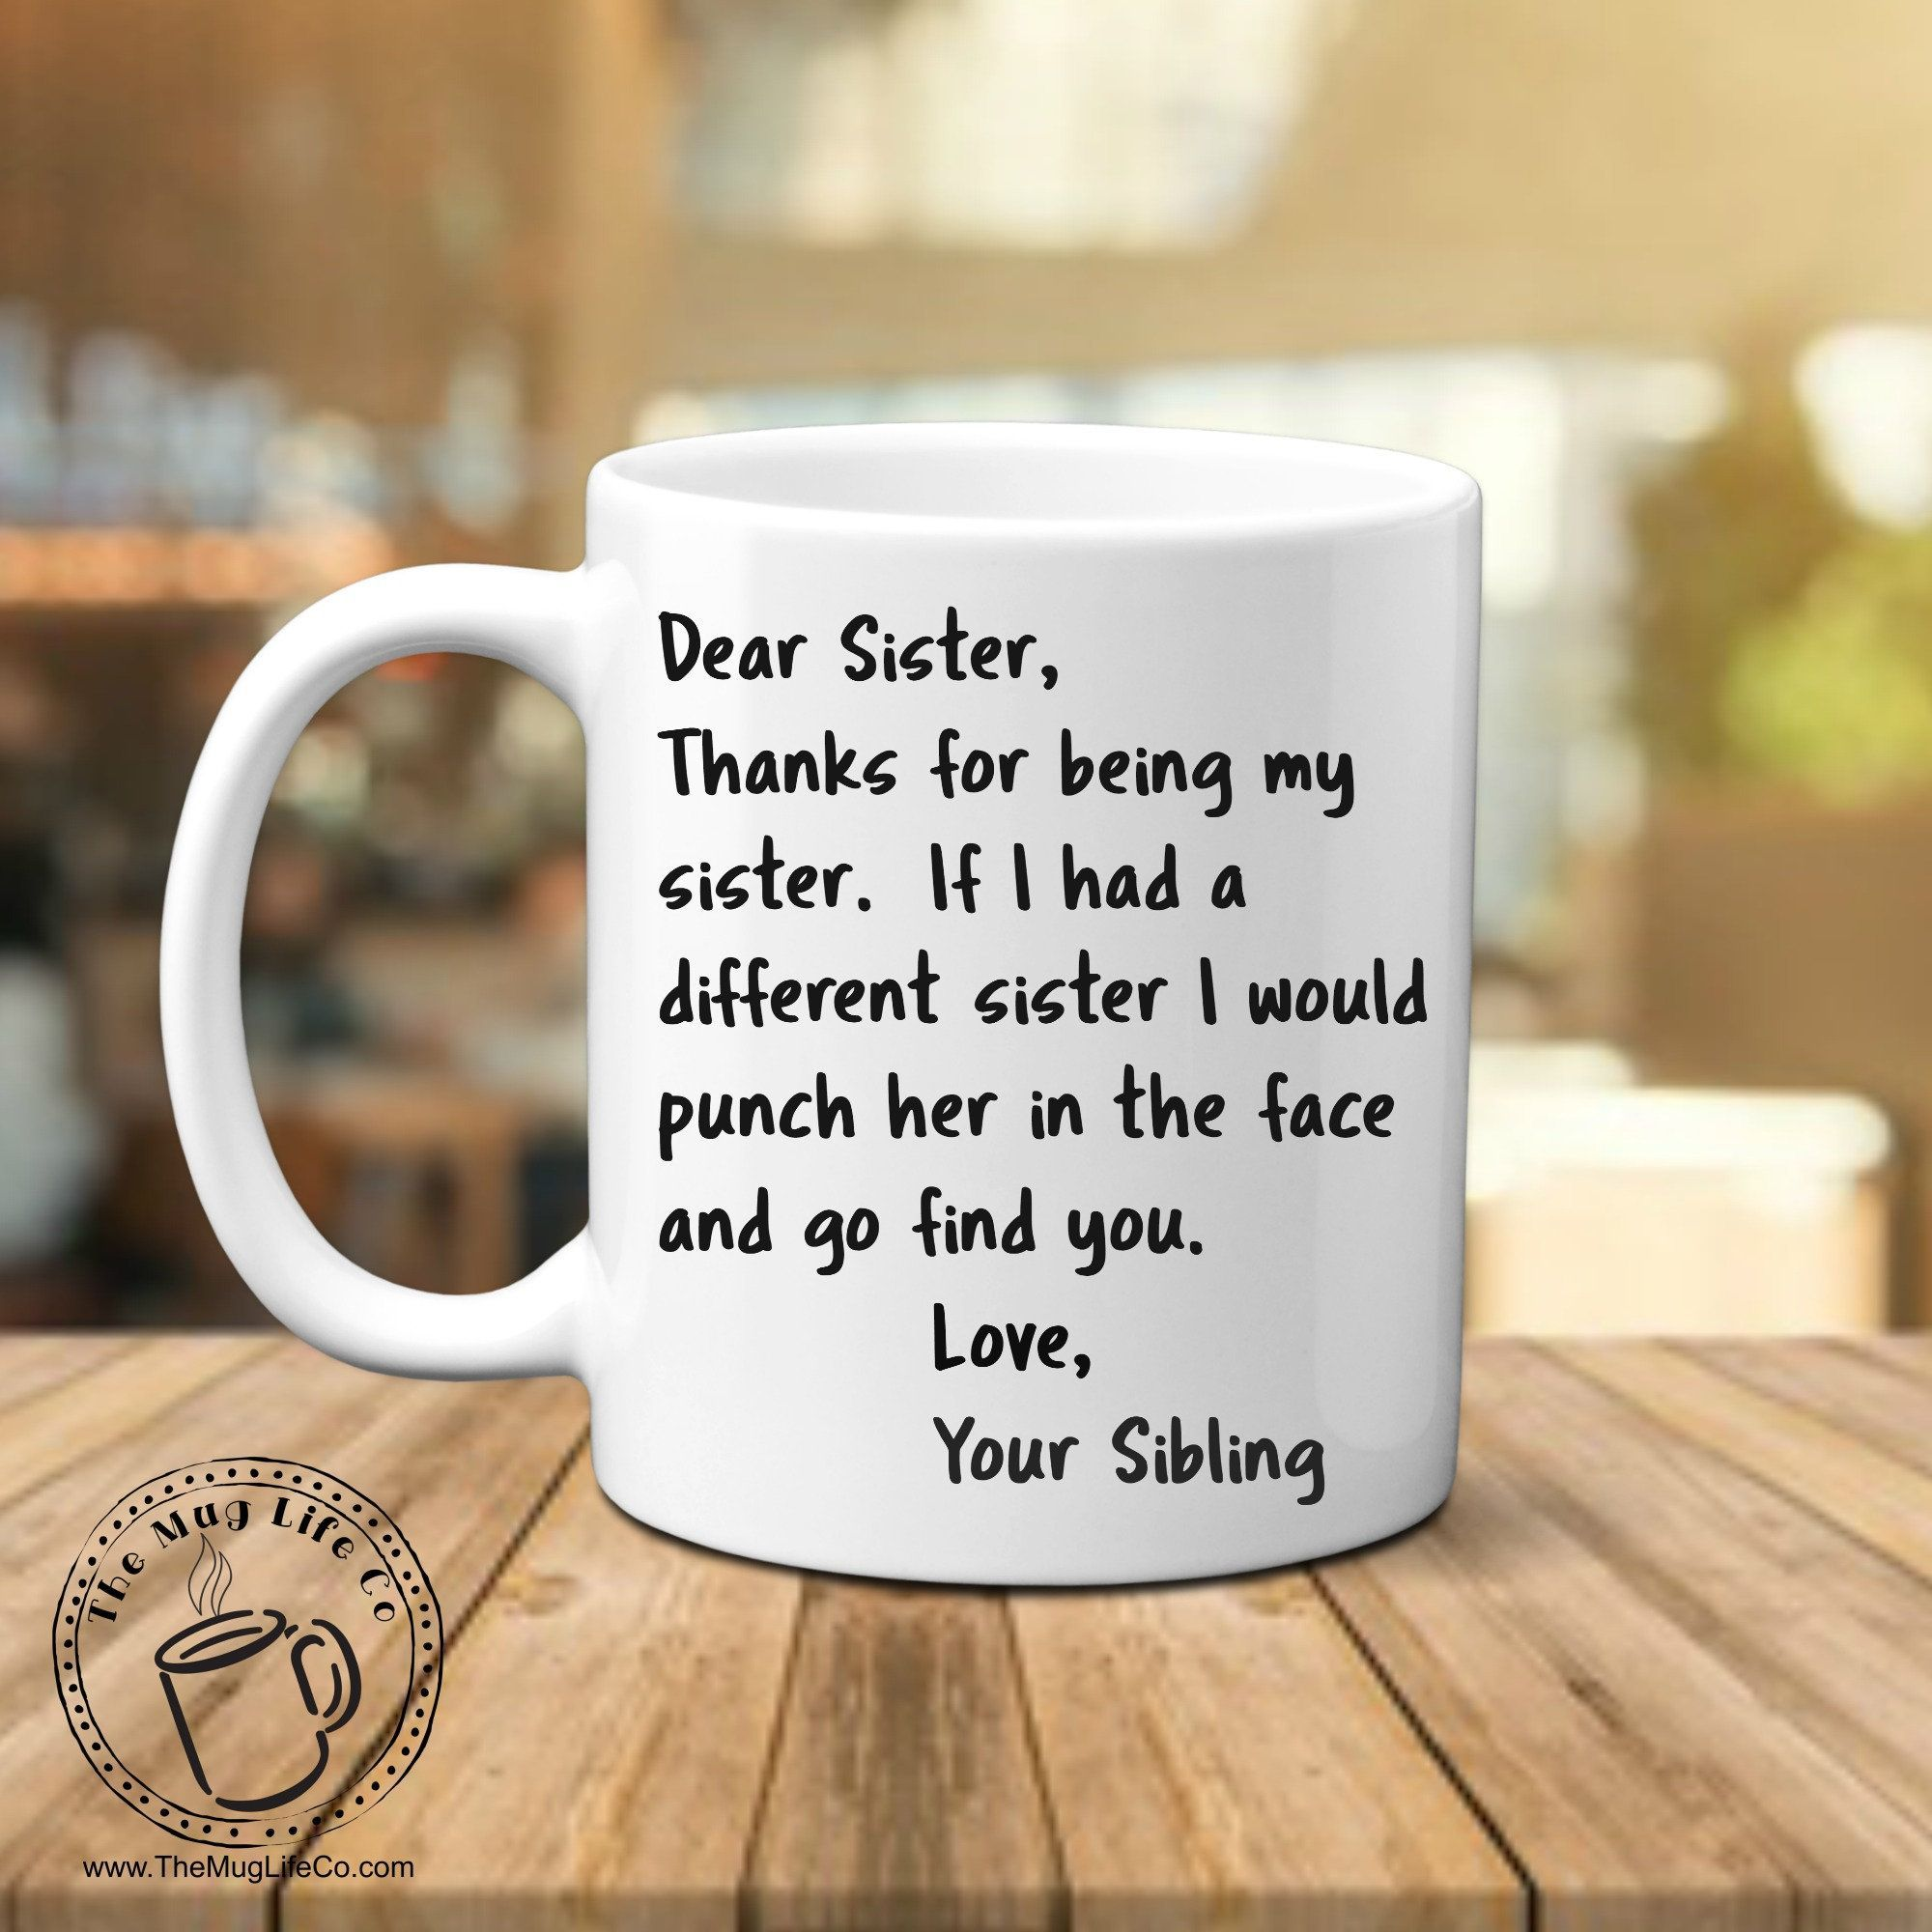 Sister Mug Thanks for Being My Sister Gifts For Women Mugs For Sister Coffee Mug Face Punch Mug Inappropriate Mug Birthday #giftsforsister